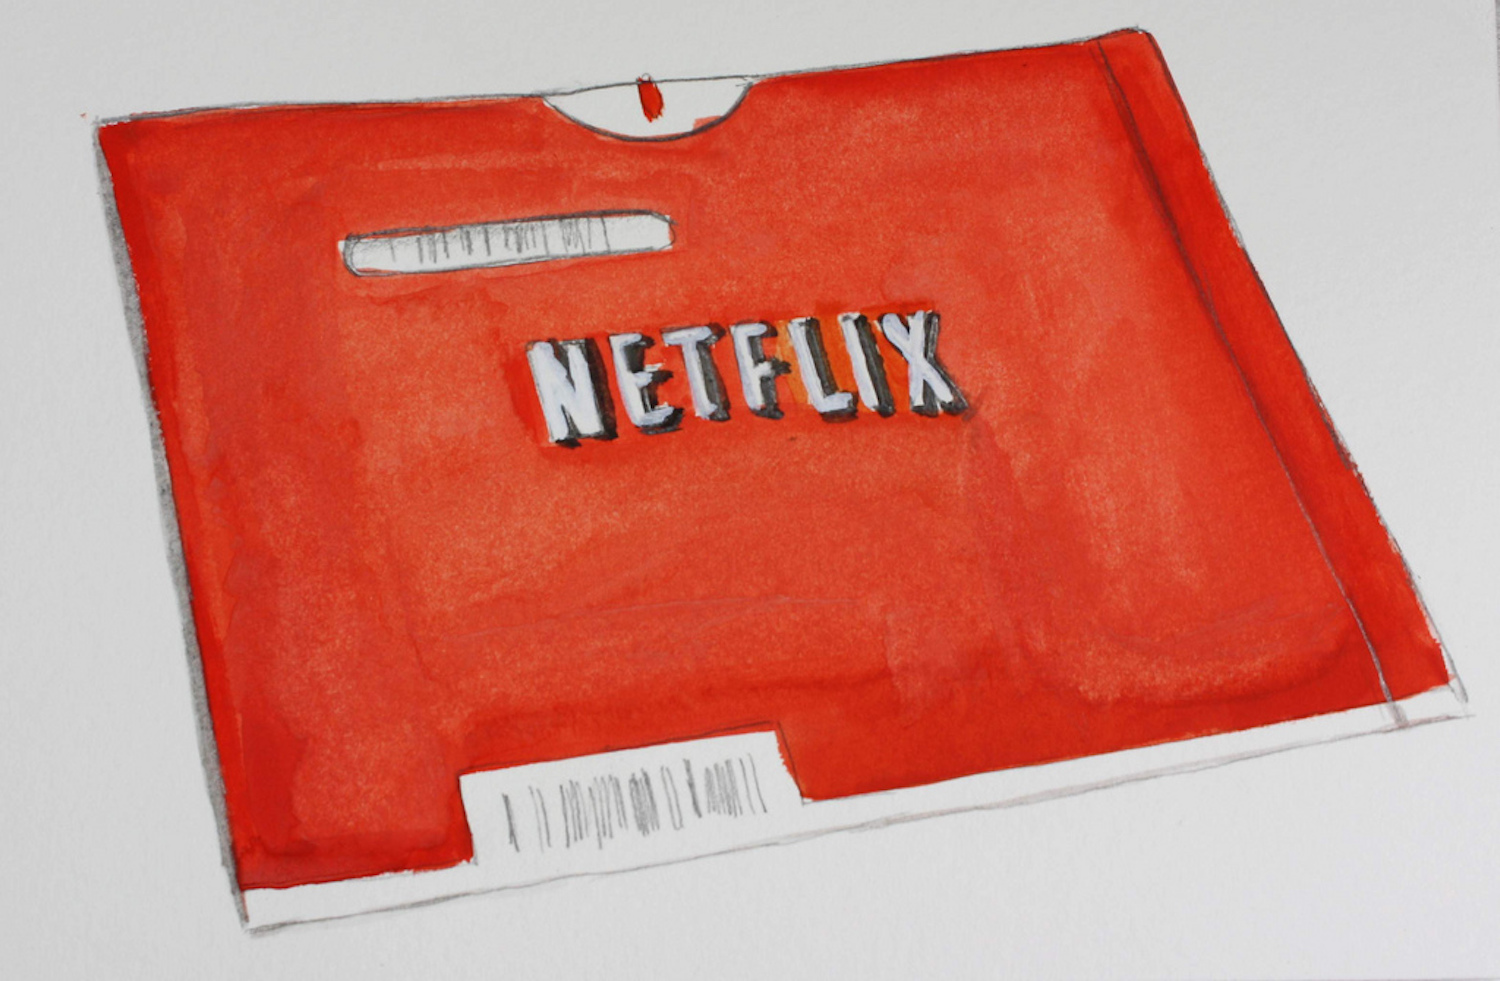 """Netflix's """"Ozark"""" aired its first season on July 21st, 2017. It stars Jason Bateman as Marty Byrne, a financial advisor who finds himself in the midst of a money-laundering scheme that quickly goes south. (Rakka/Creative Commons)"""